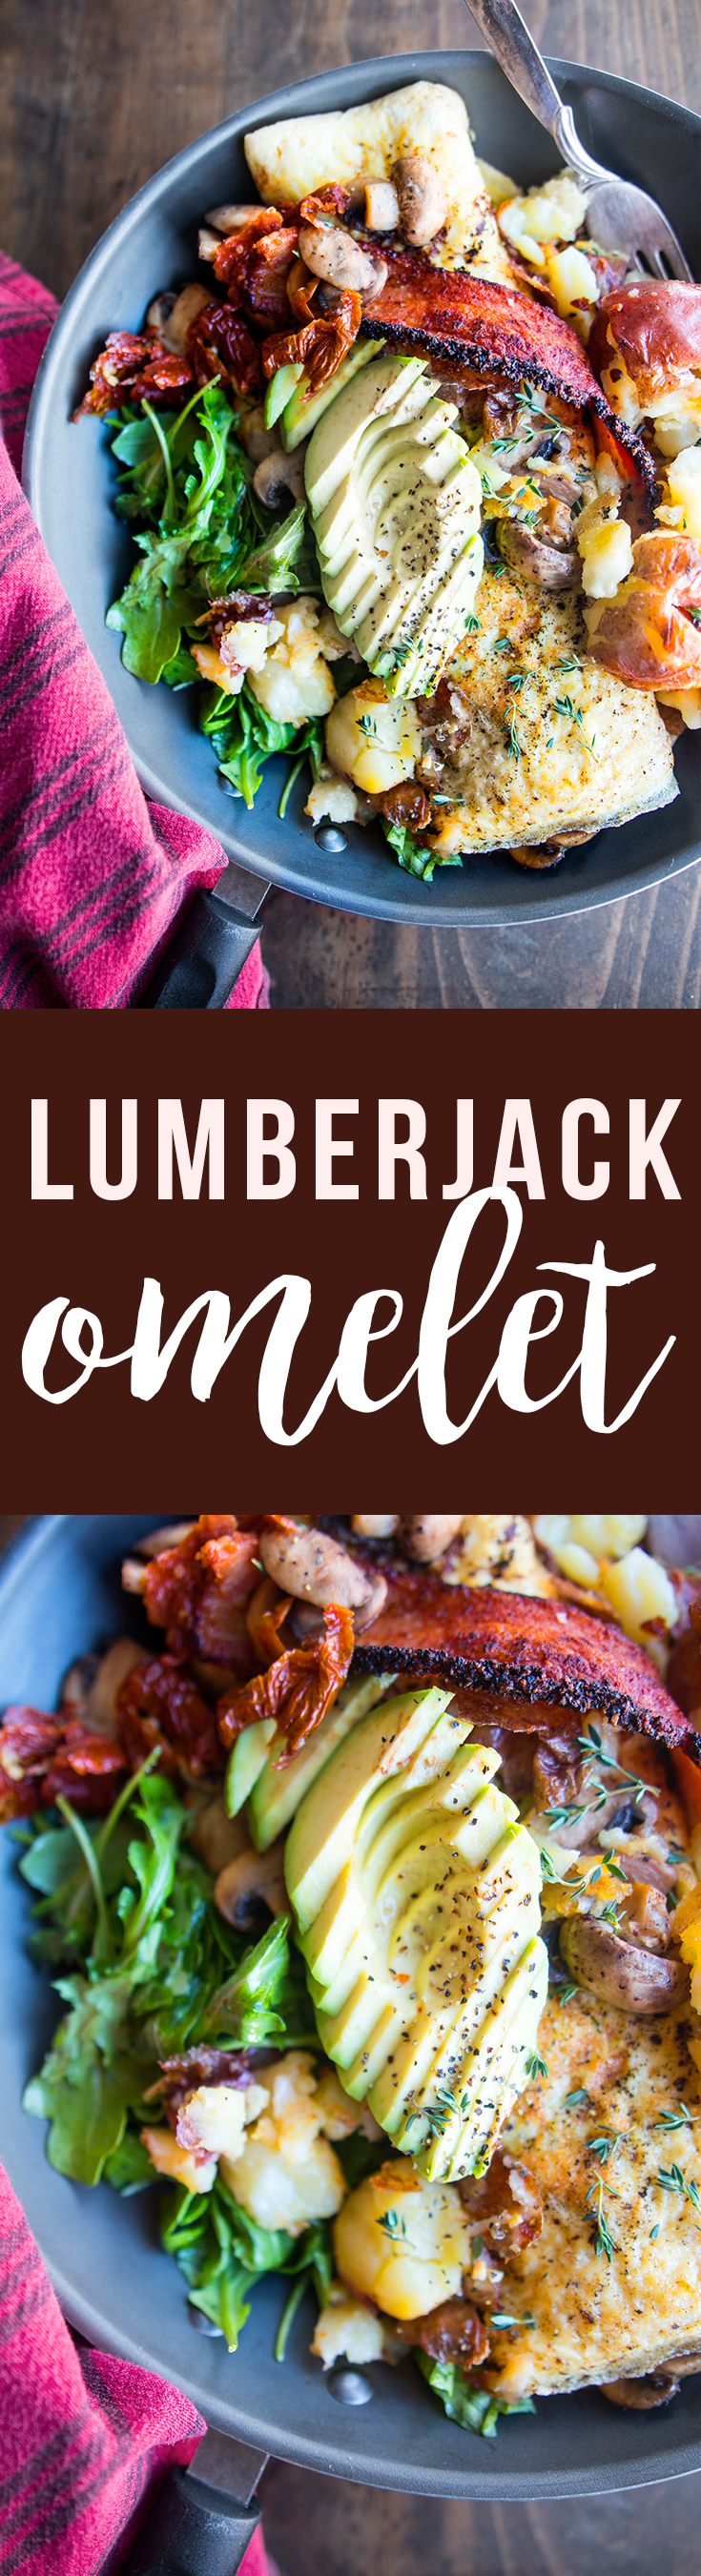 Lumberjack Omelet (and How to Decode Egg Cartons) | Fresh Planet Flavor